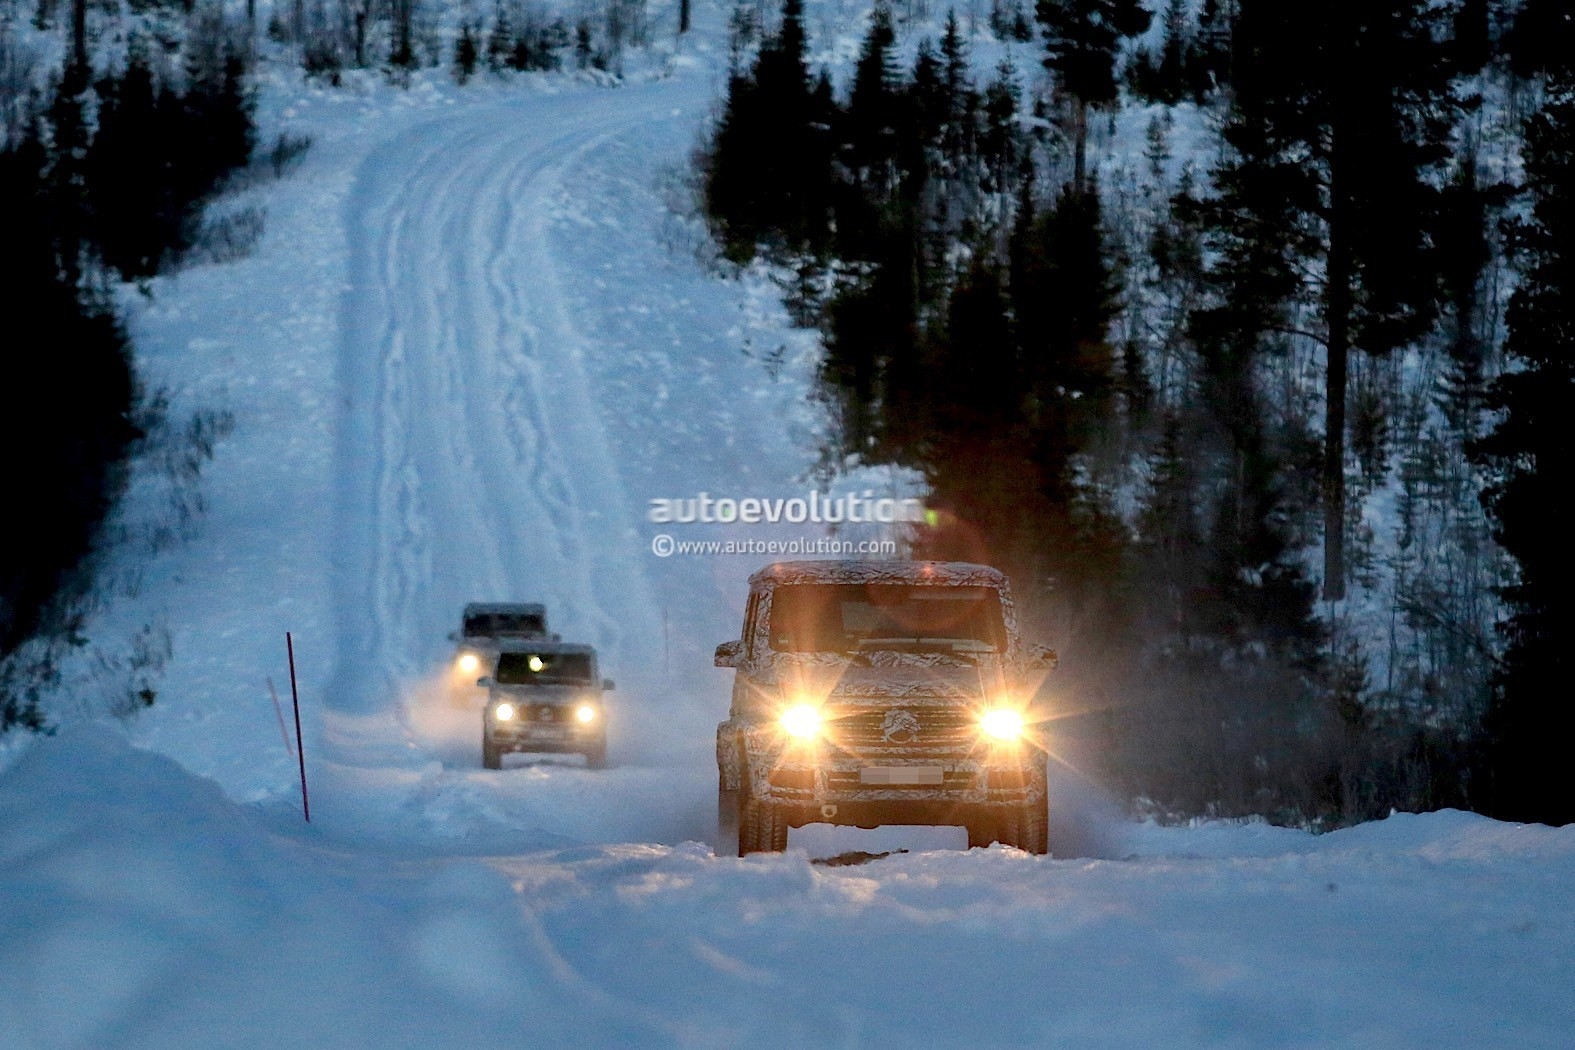 Mercedes Auto Parts >> Two 2019 Mercedes-AMG G63s Play With a Third G-Class in the Arctic Snow - autoevolution